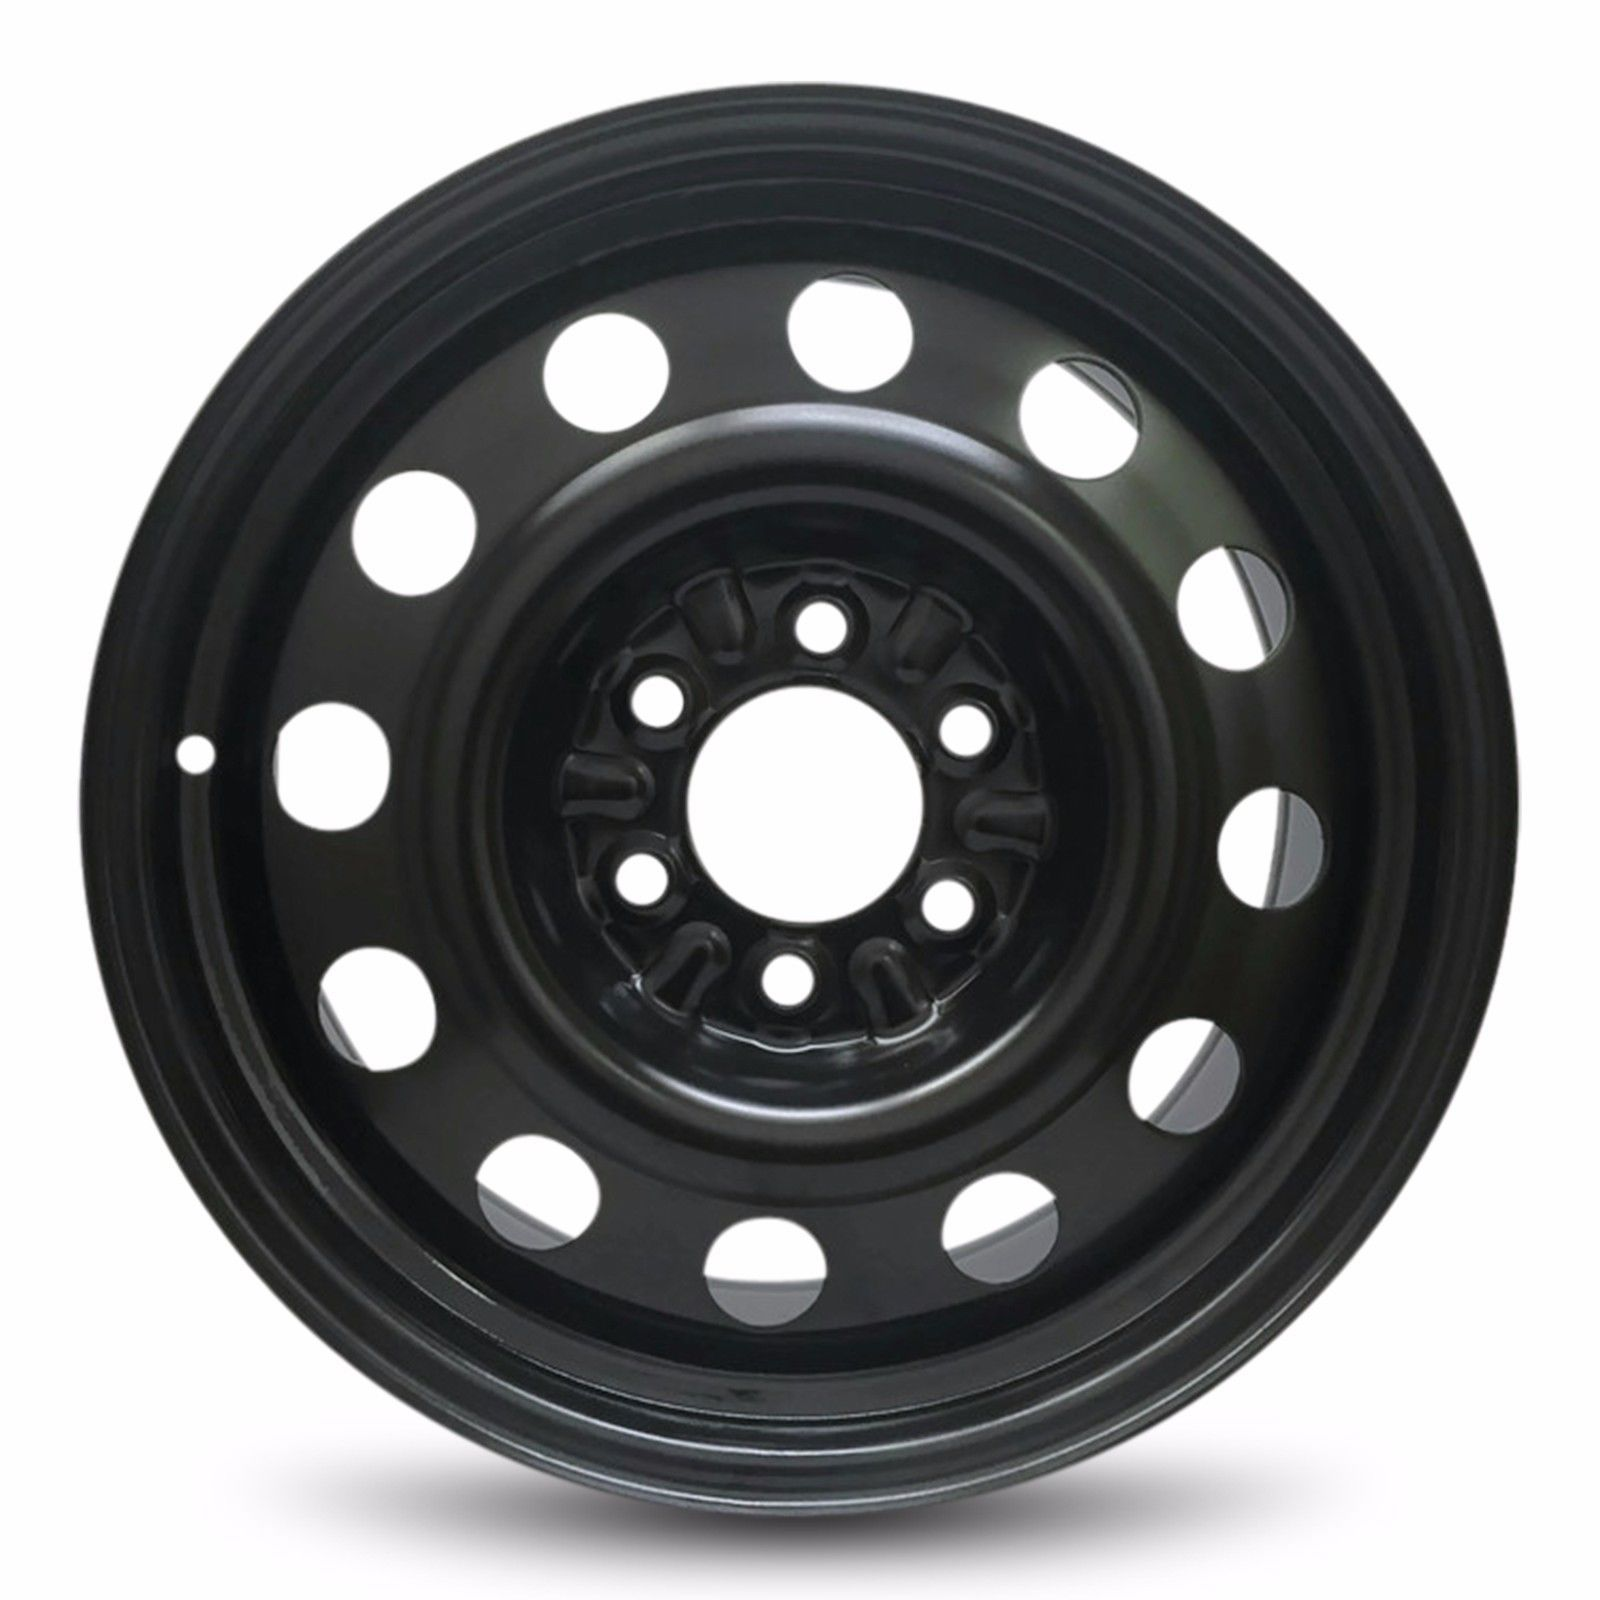 New 18x7.5 (12-15) Ford Expedition (04-15) F-150 (06-08) LT Steel Wheel Rim, used for sale  USA